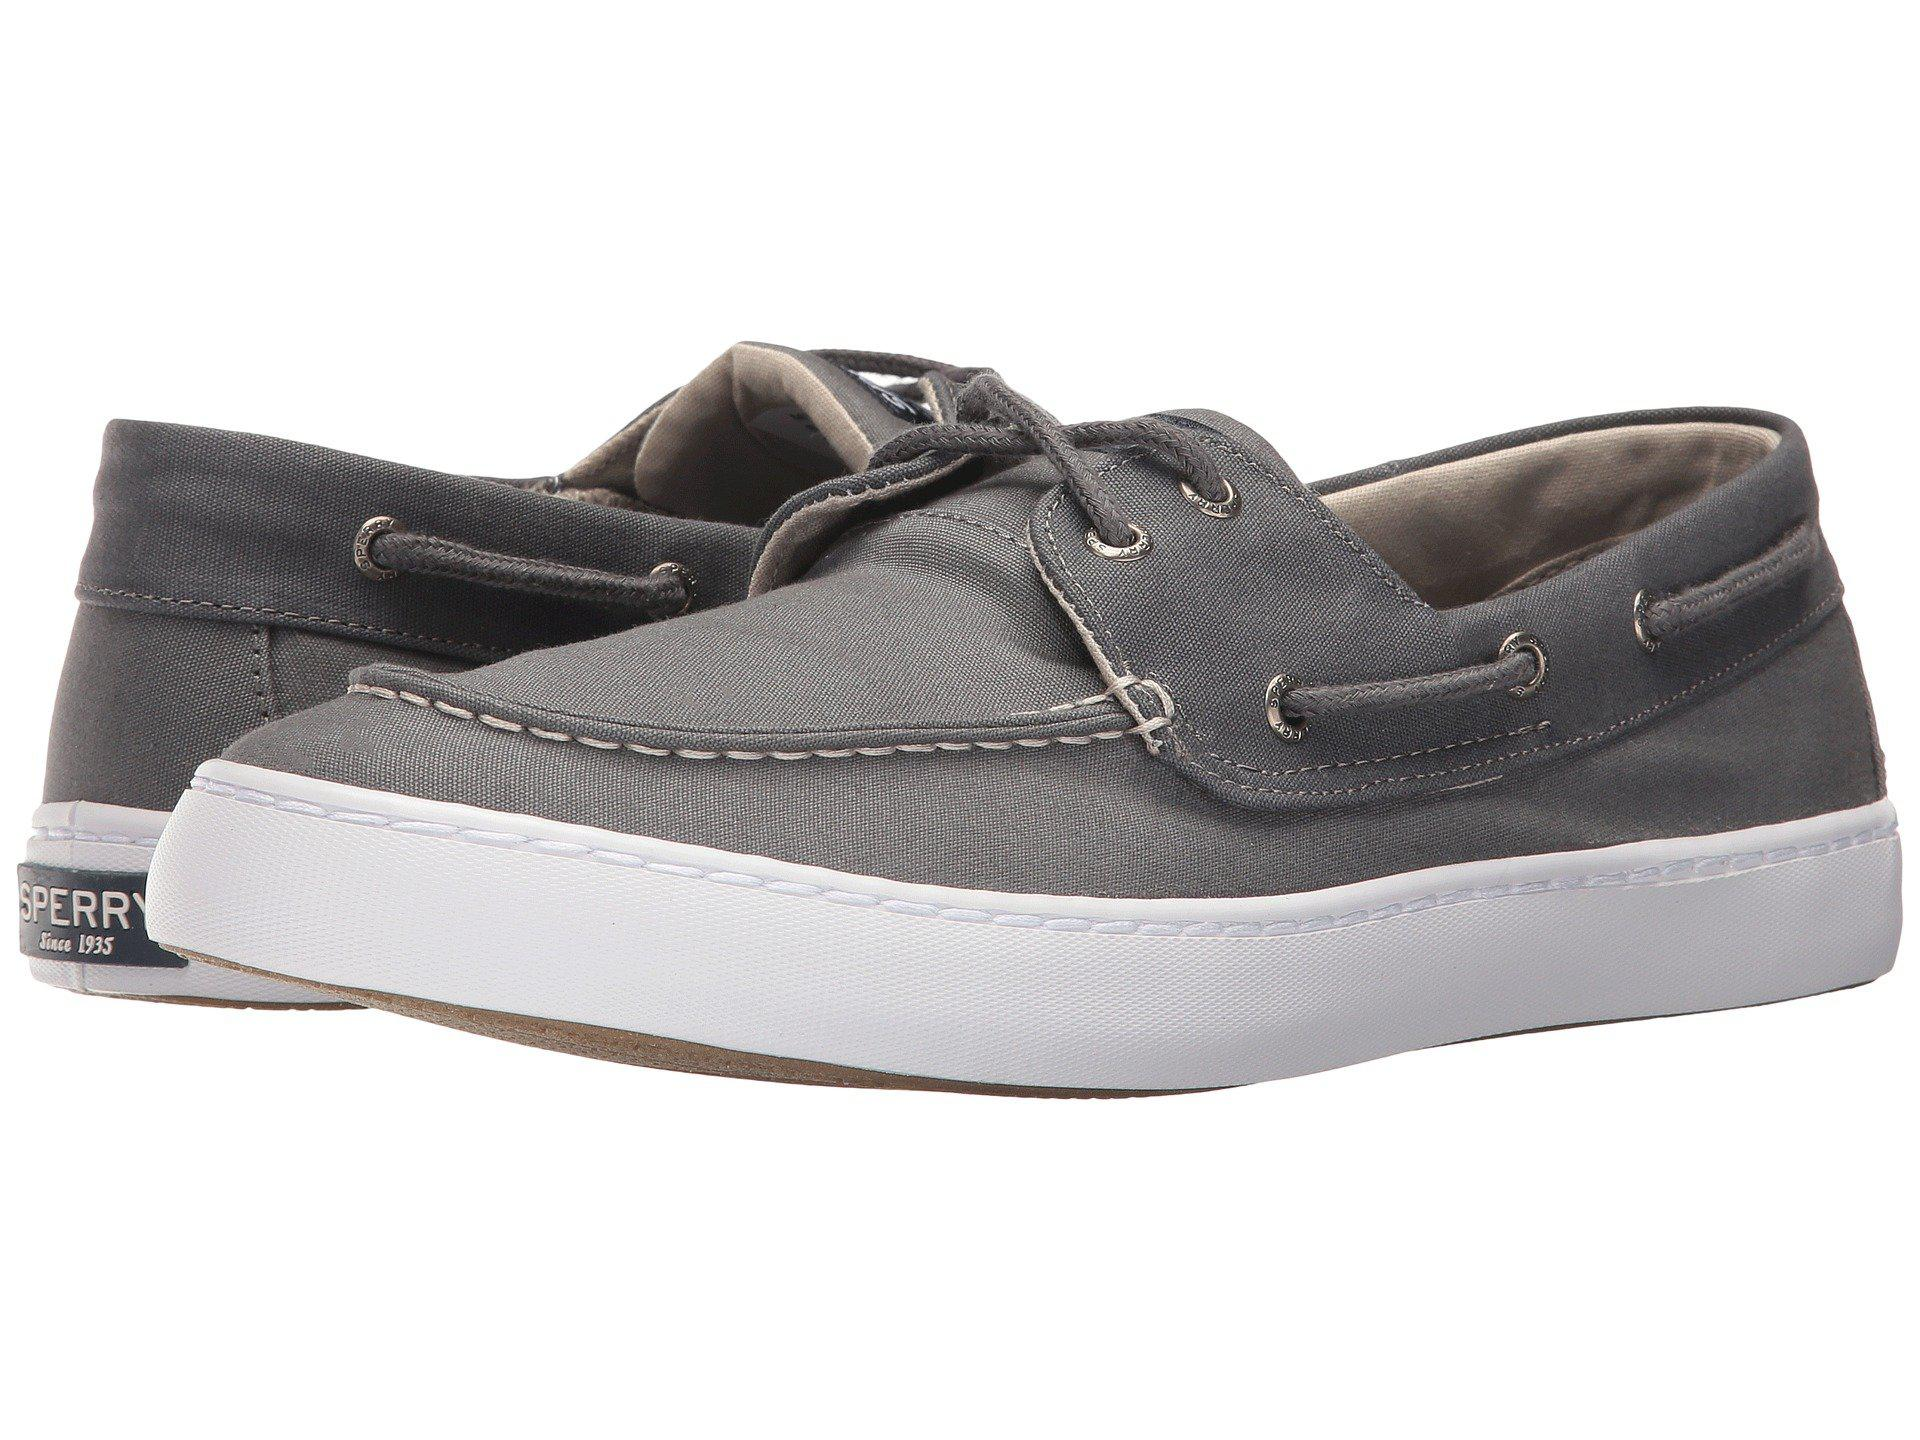 9fb5689b506d8 Lyst - Sperry Top-Sider Cutter 2-eye in Gray for Men